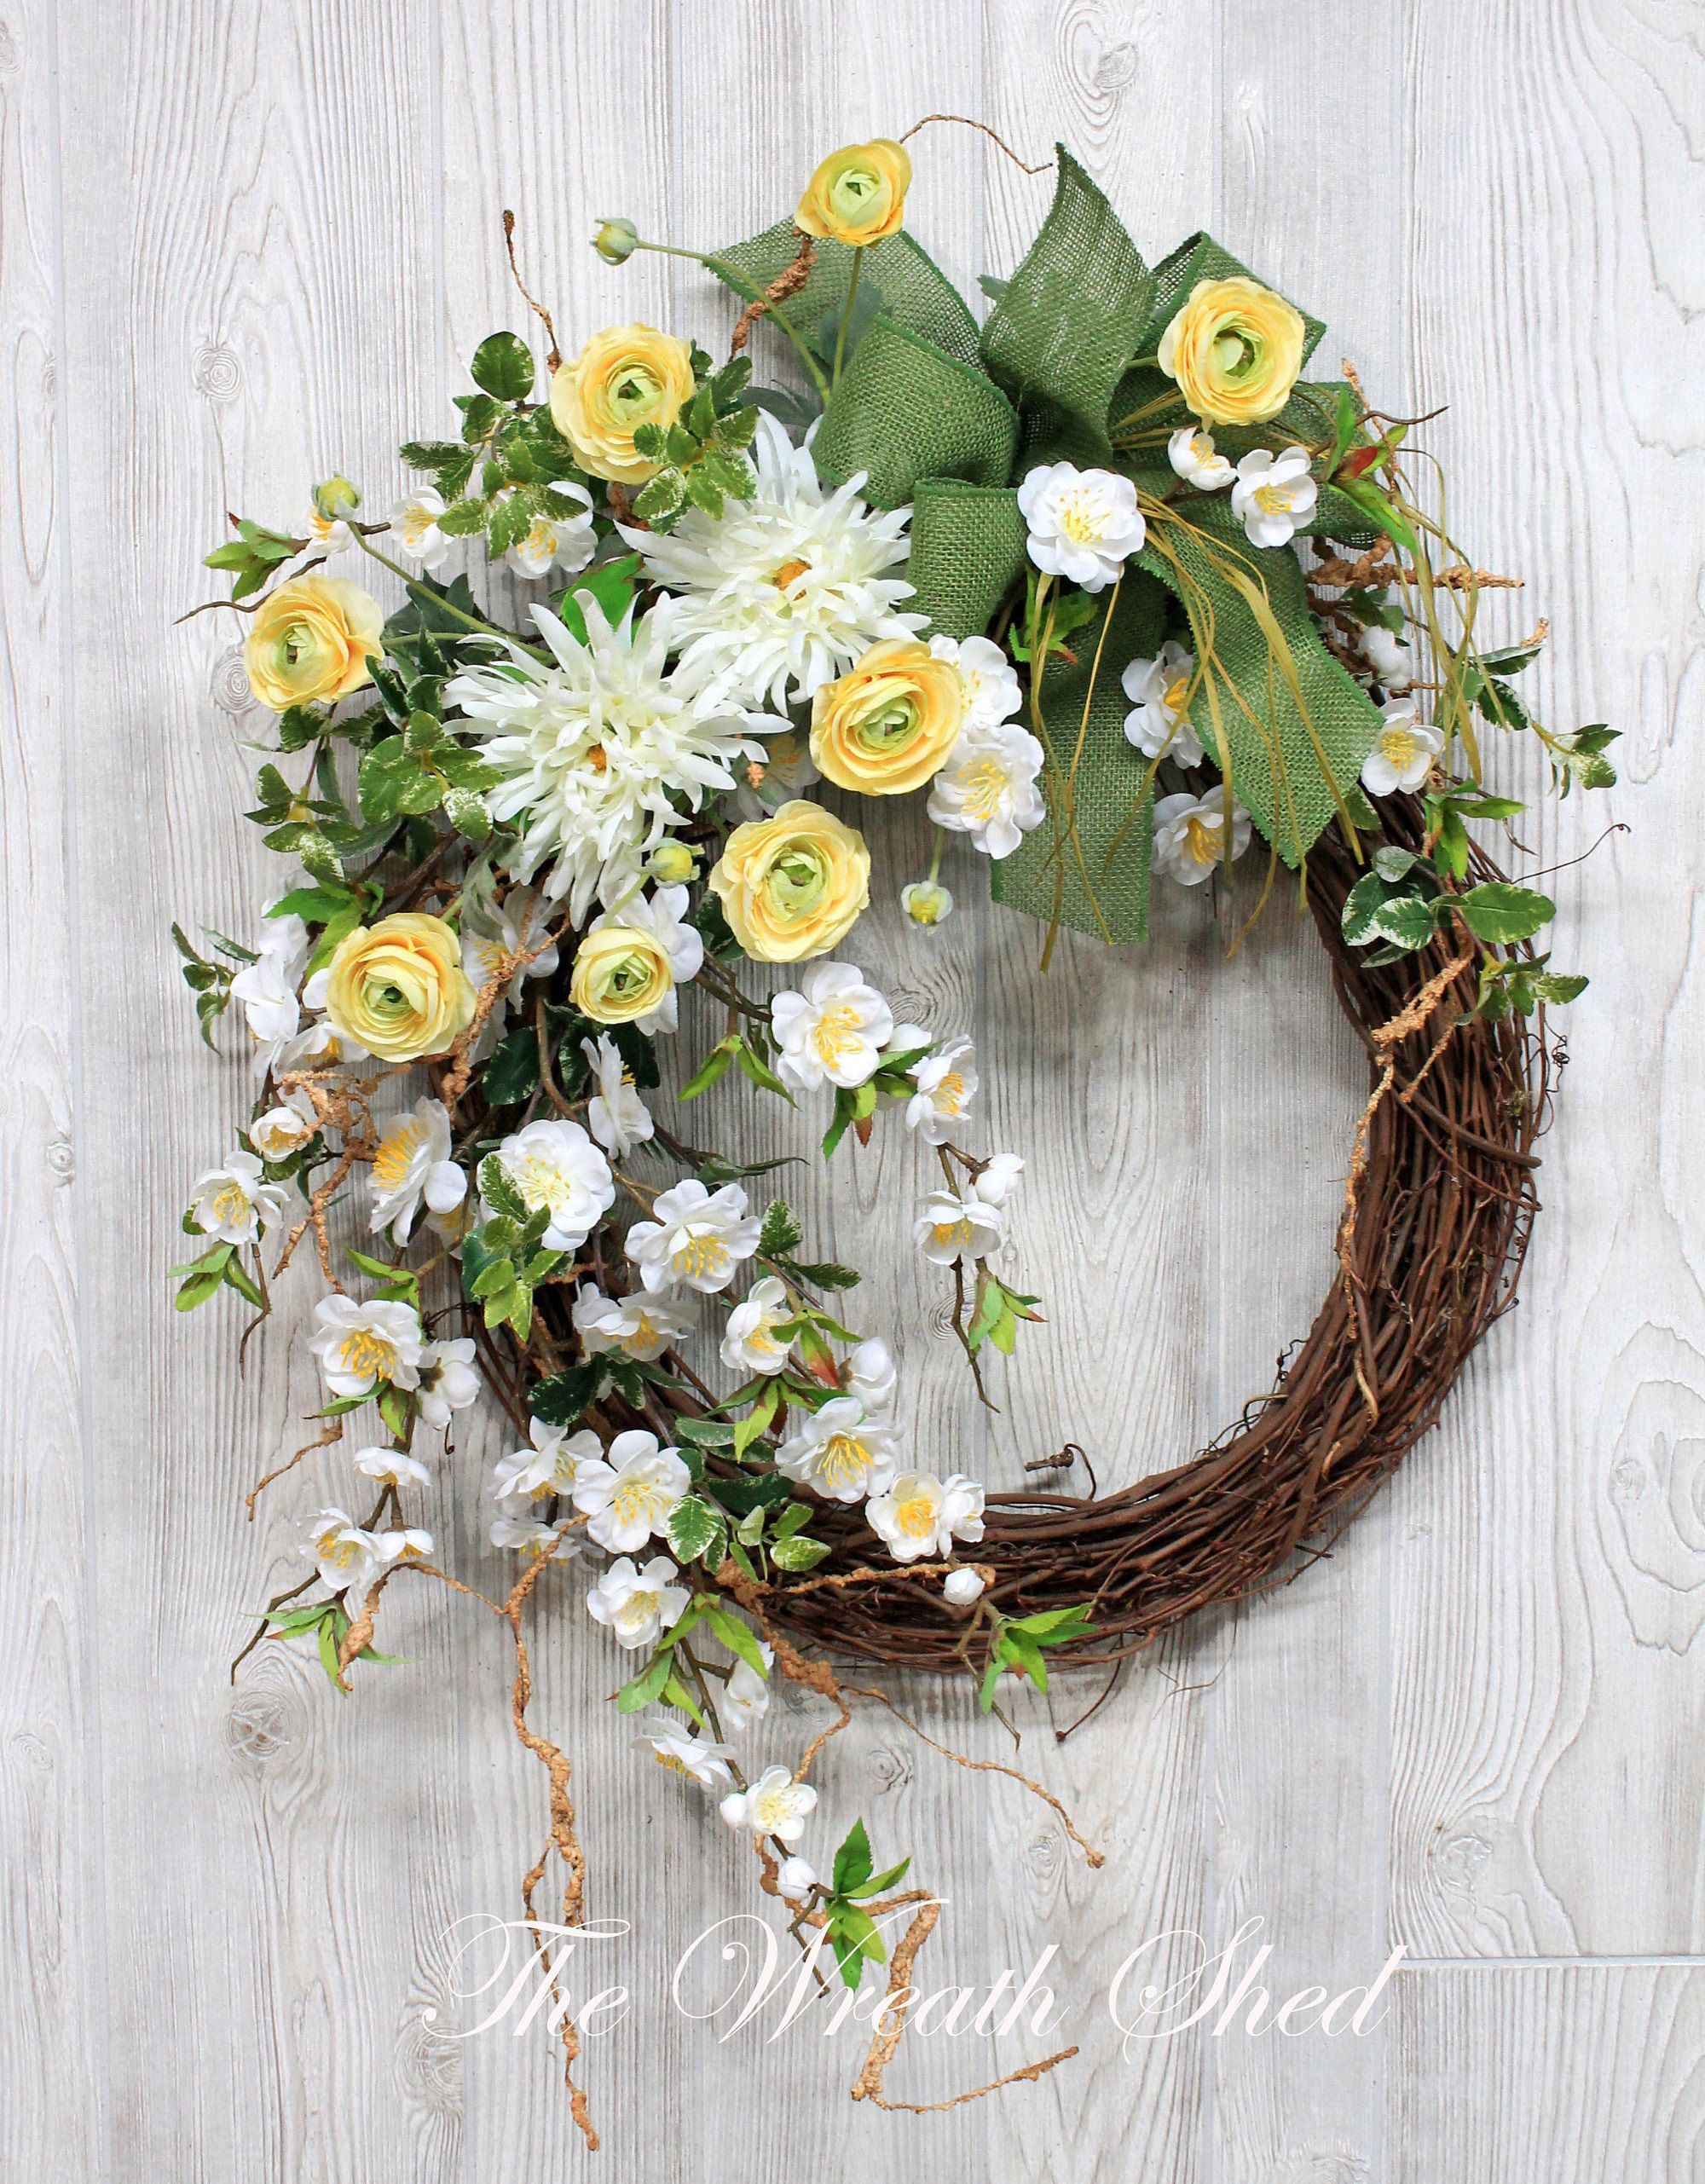 flower how front wreath for pinterest grapevine sunflower door spring wreaths summer a outdoor house bird to design home doors make diy inspirations ideas silk beautiful